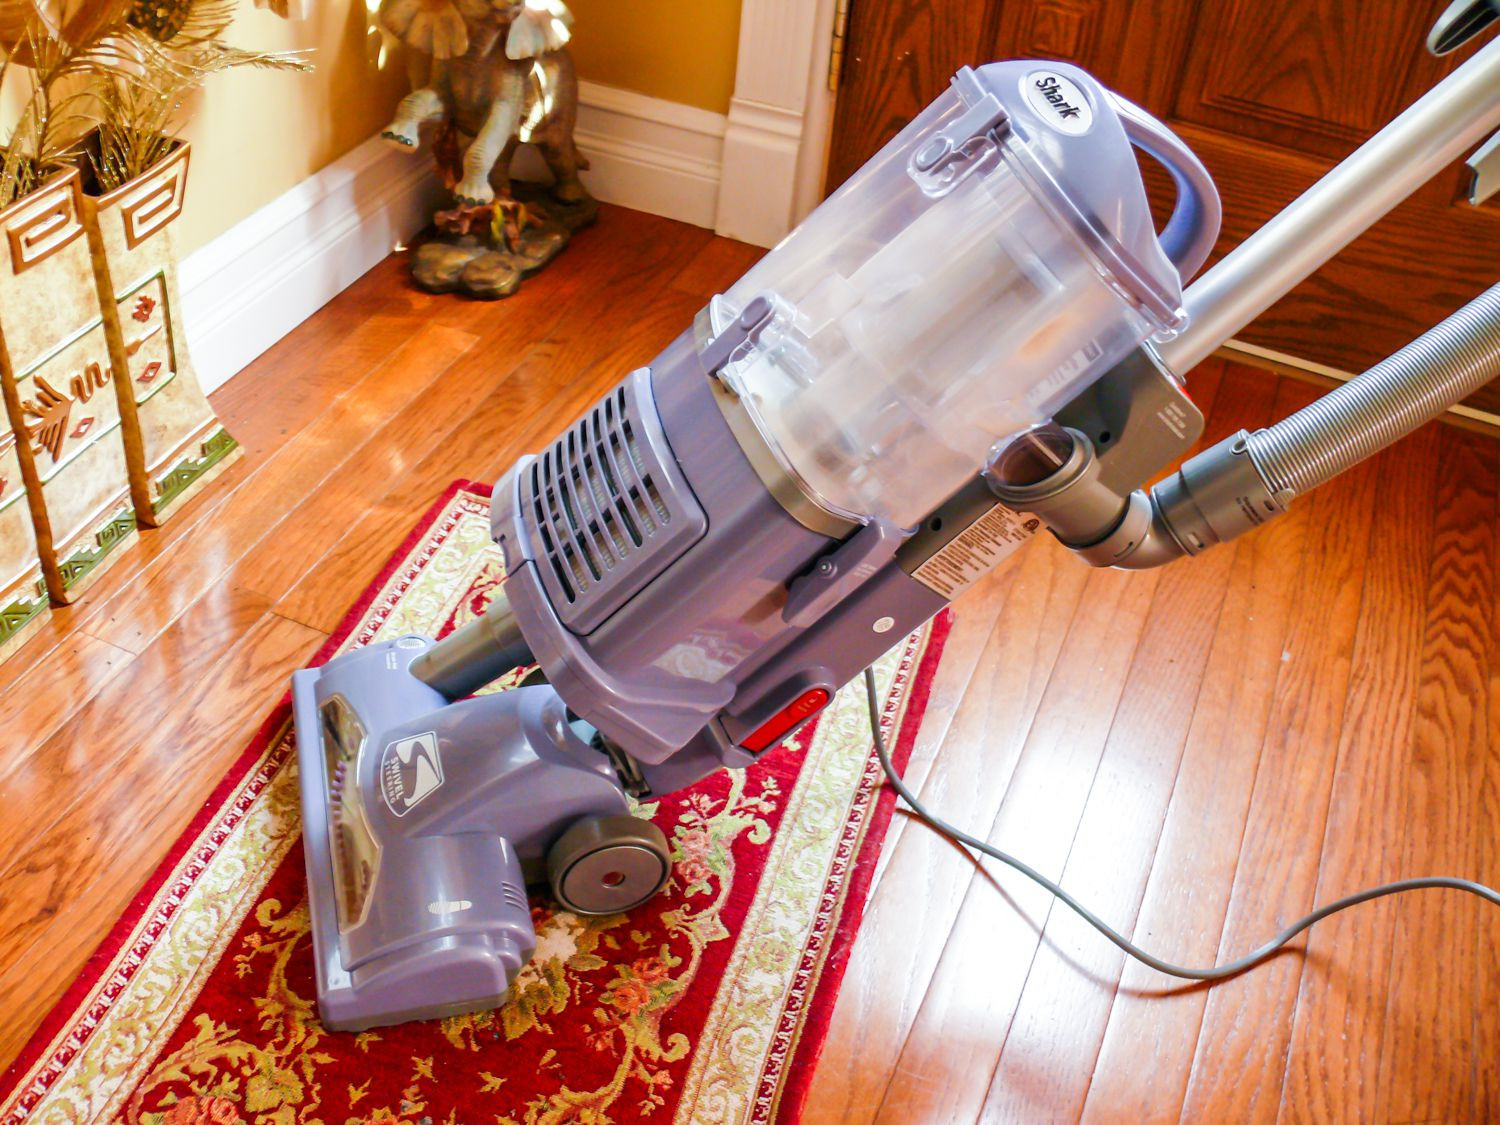 top rated hardwood floor steam cleaner of the 10 best vacuum cleaners to buy in 2018 pertaining to 4062974 2 2 5bbf718a46e0fb00519d59a7